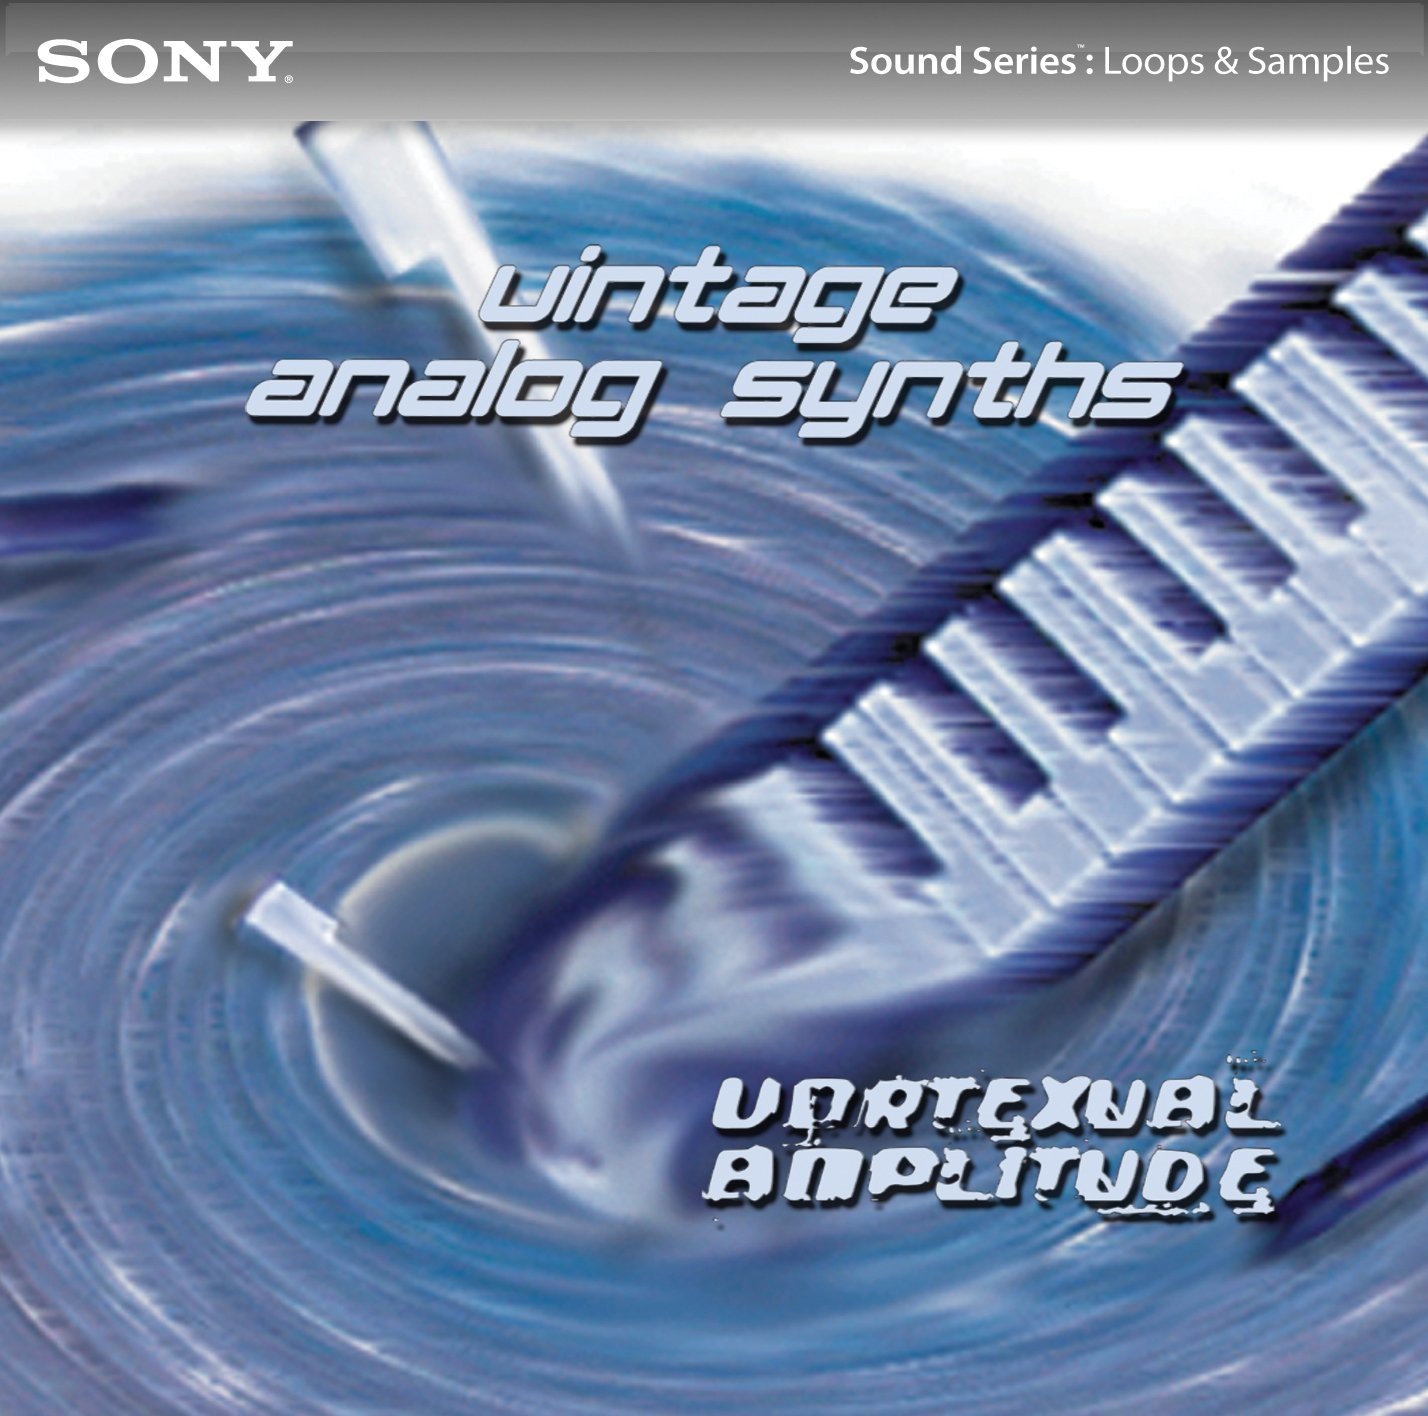 Vintage Analog Synths [Download] Sony Creative Software DLC177